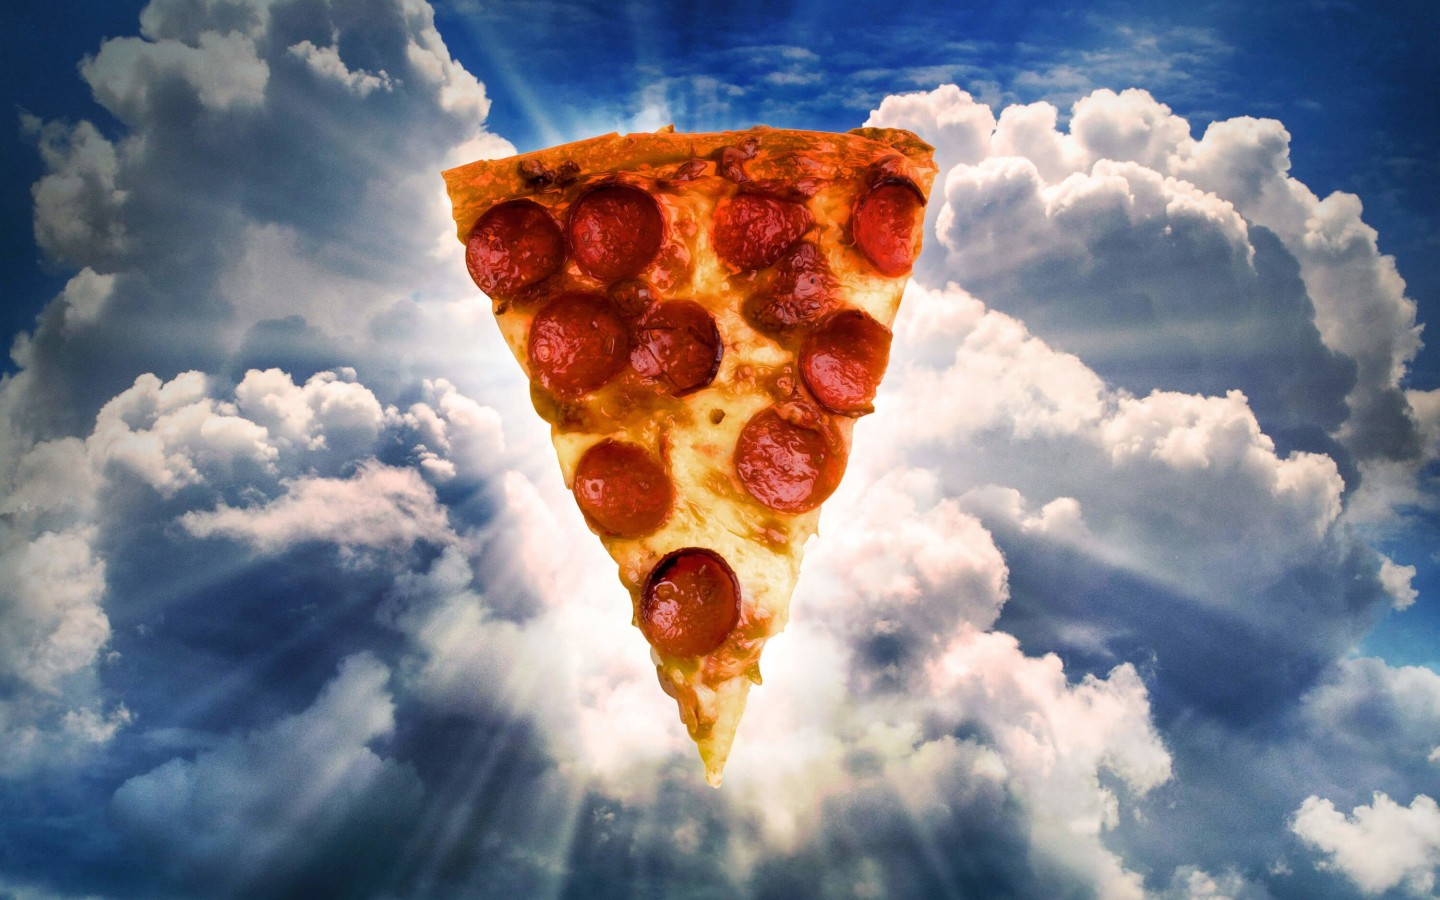 Holy Pizza Wallpaper for Desktop 1440x900